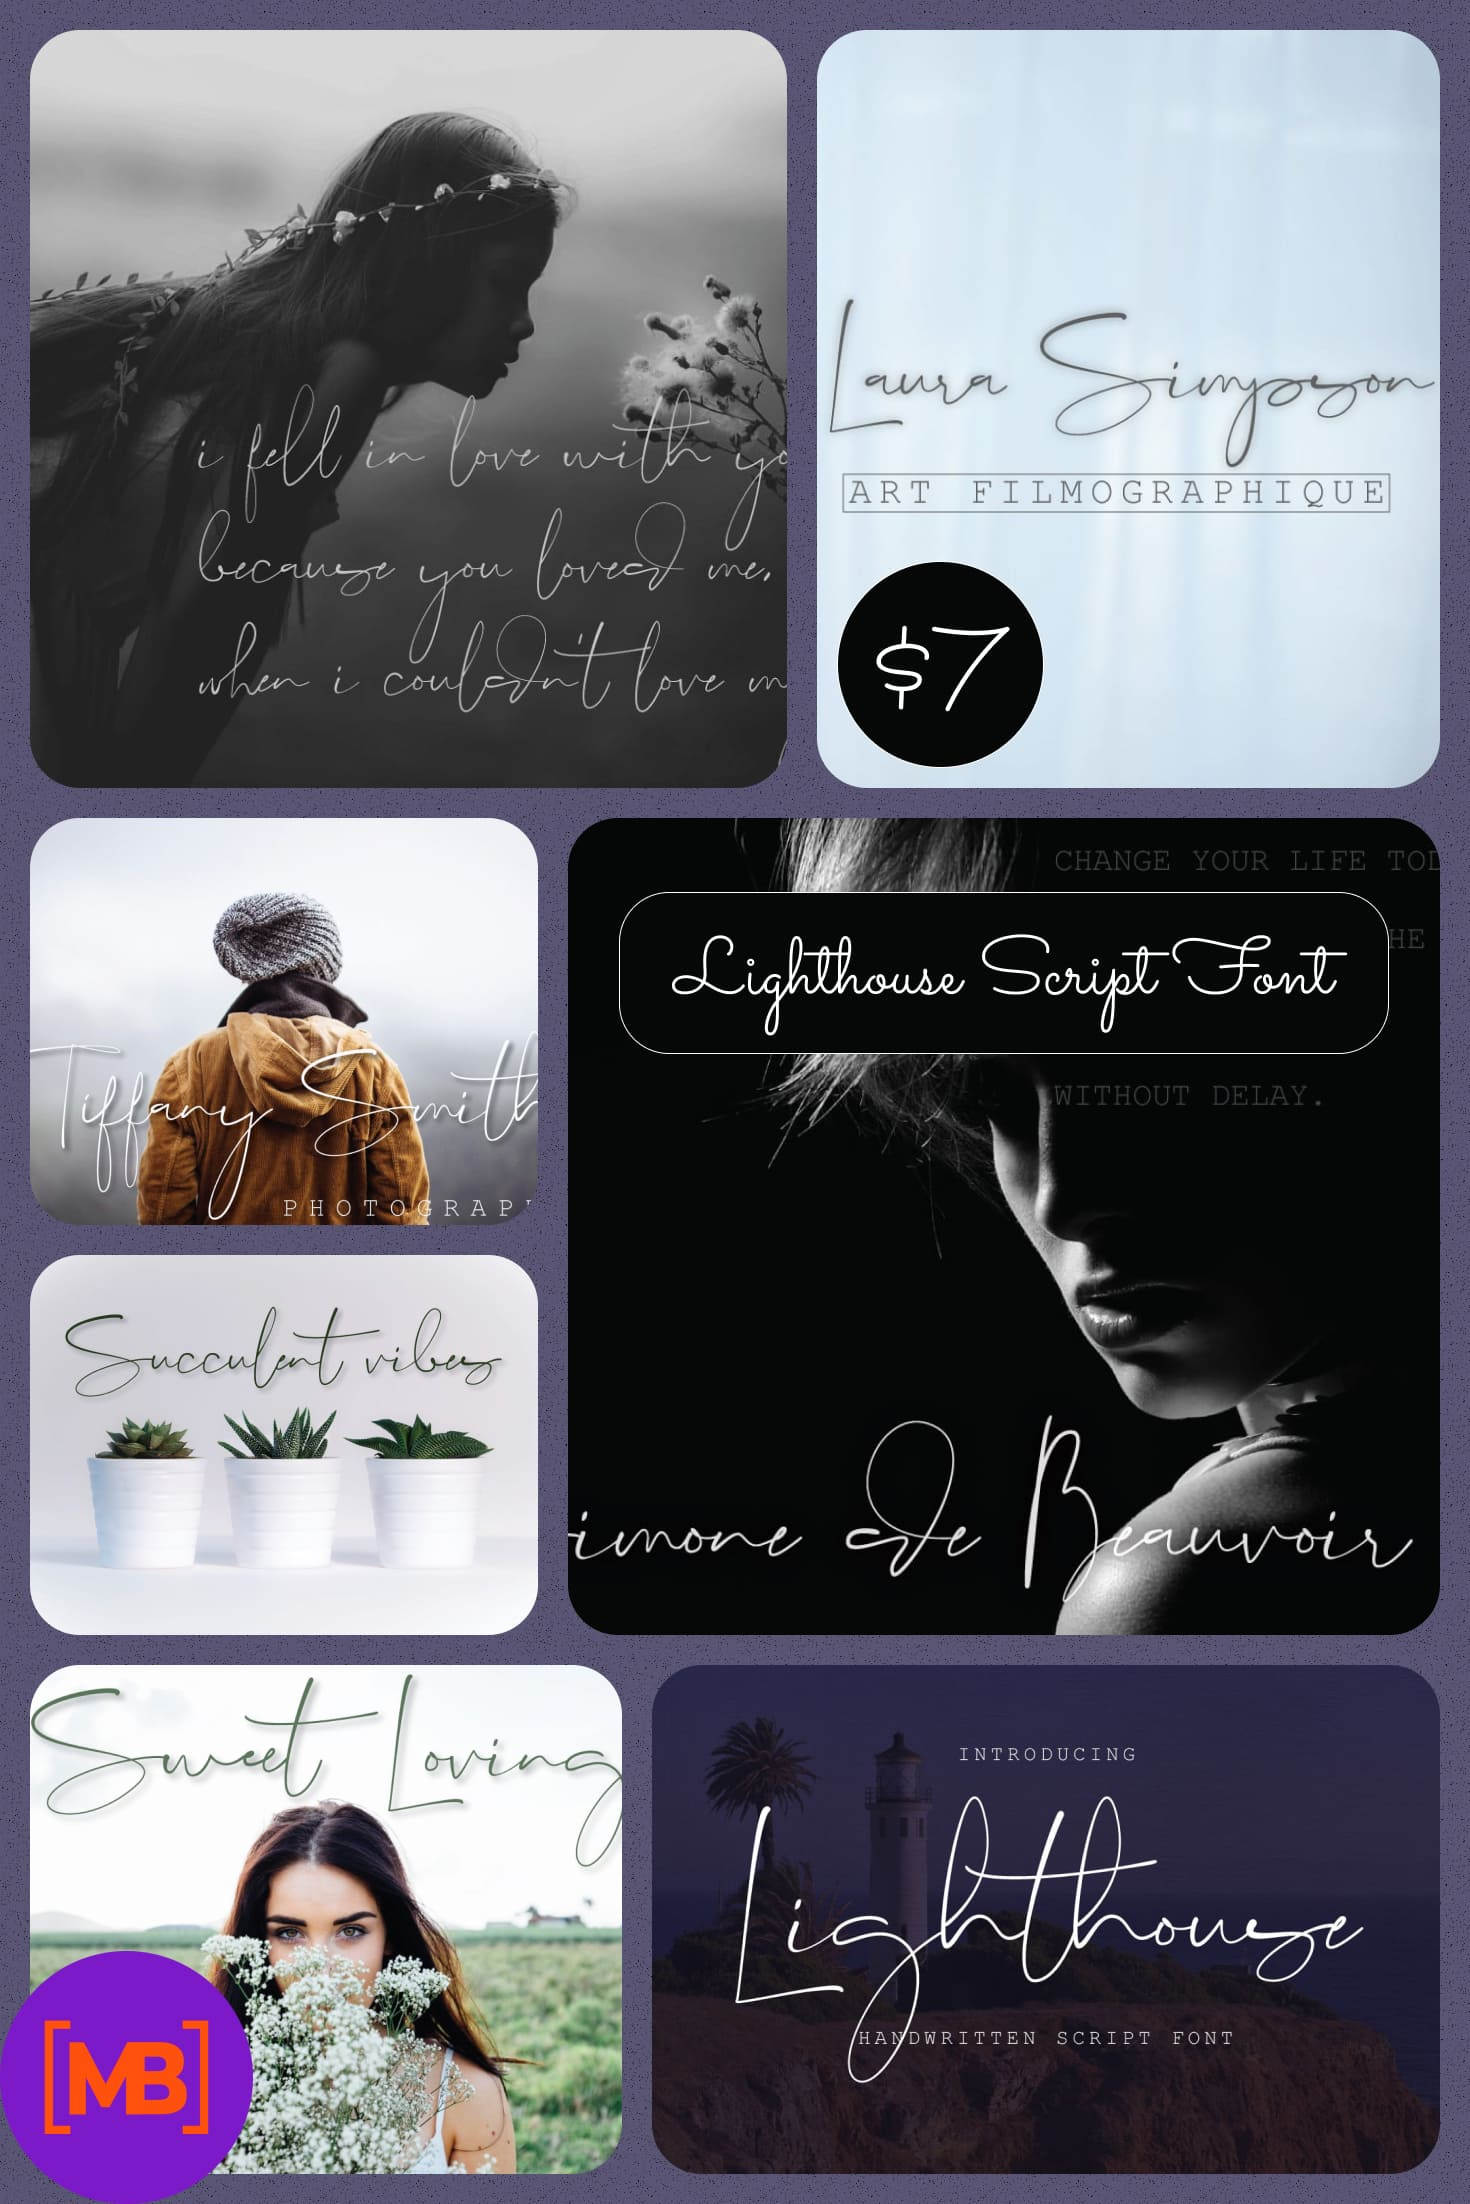 Lighthouse Script Font - $7 only. Collage Image.